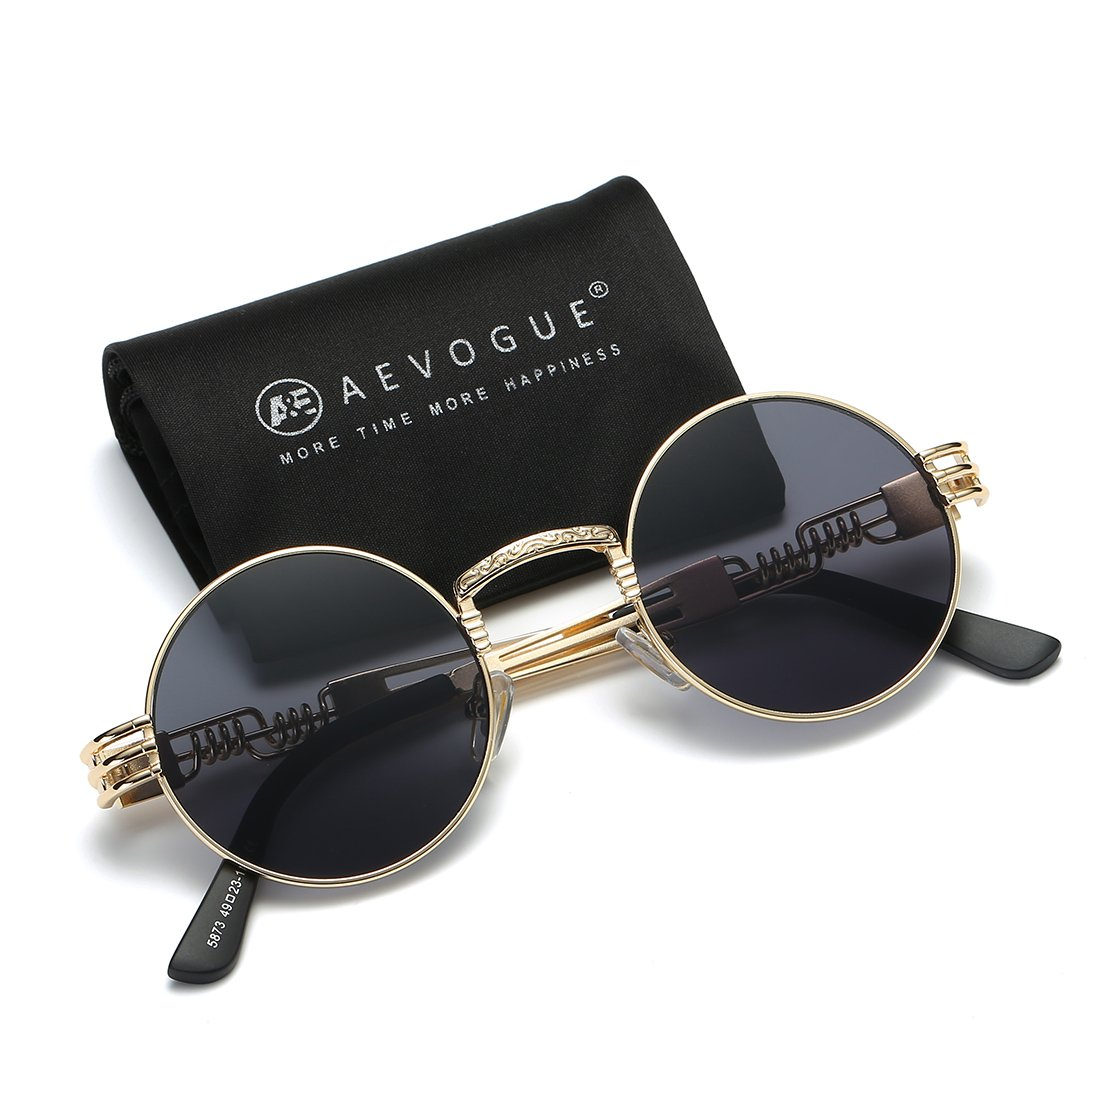 AEVOGUE Sunglasses Steampunk Style Round Metal Frame Unisex Glasses AE0539 (Gold&Black, 48) by AEVOGUE